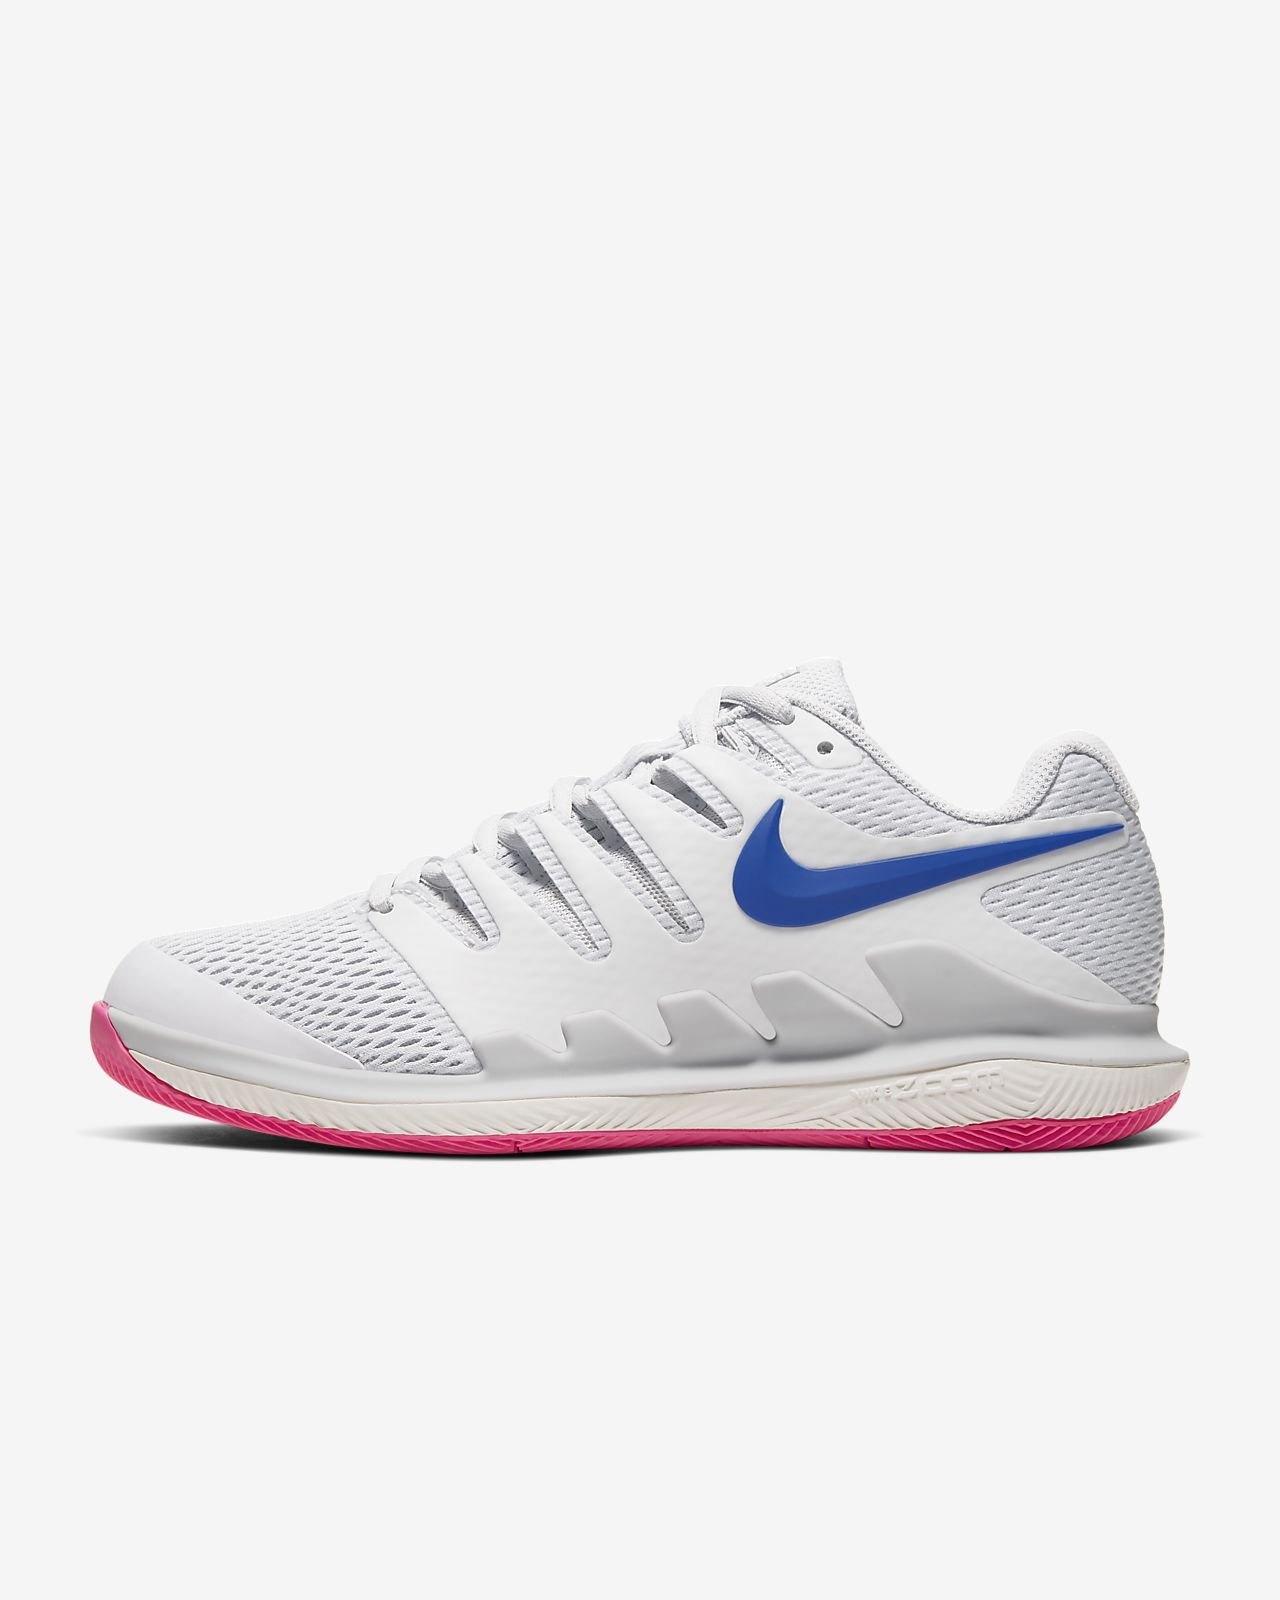 Comfy Shoes Nike Performance AIR ZOOM VAPOR X CLAY Outdoor